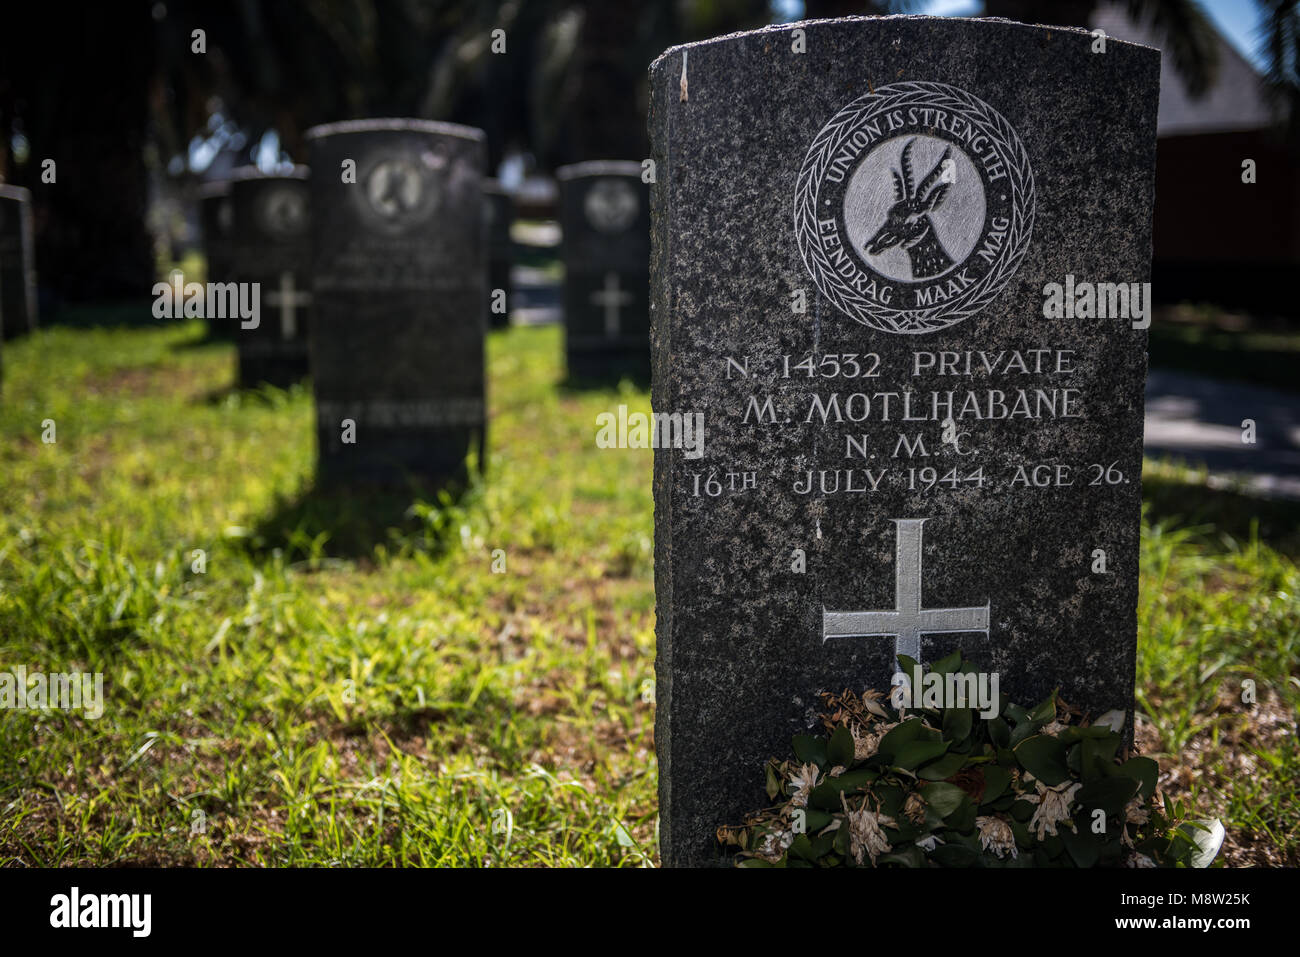 The grave of a young black African soldier killed during World War Two and buried in Swakopmund, Namibia - Stock Image